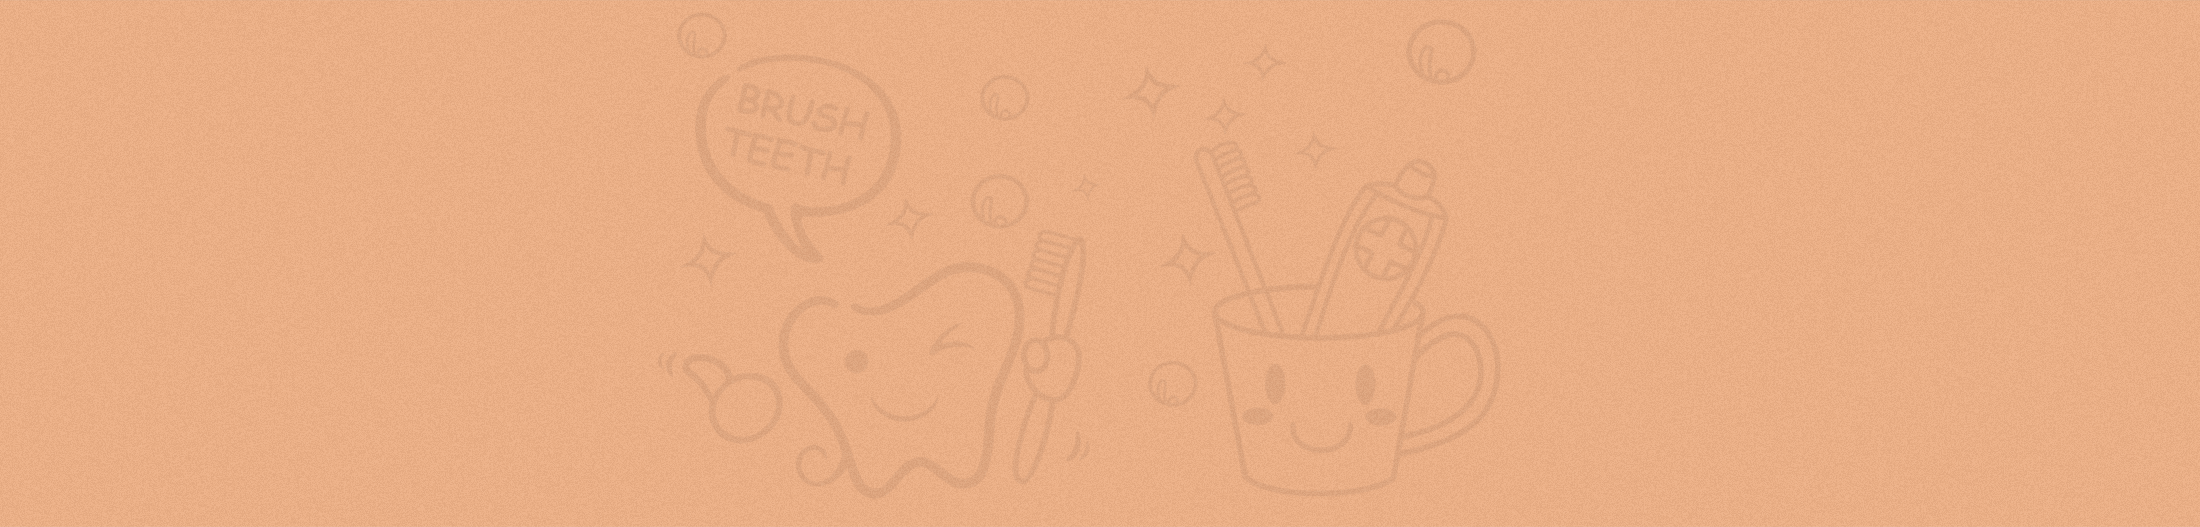 tan tooth brush background